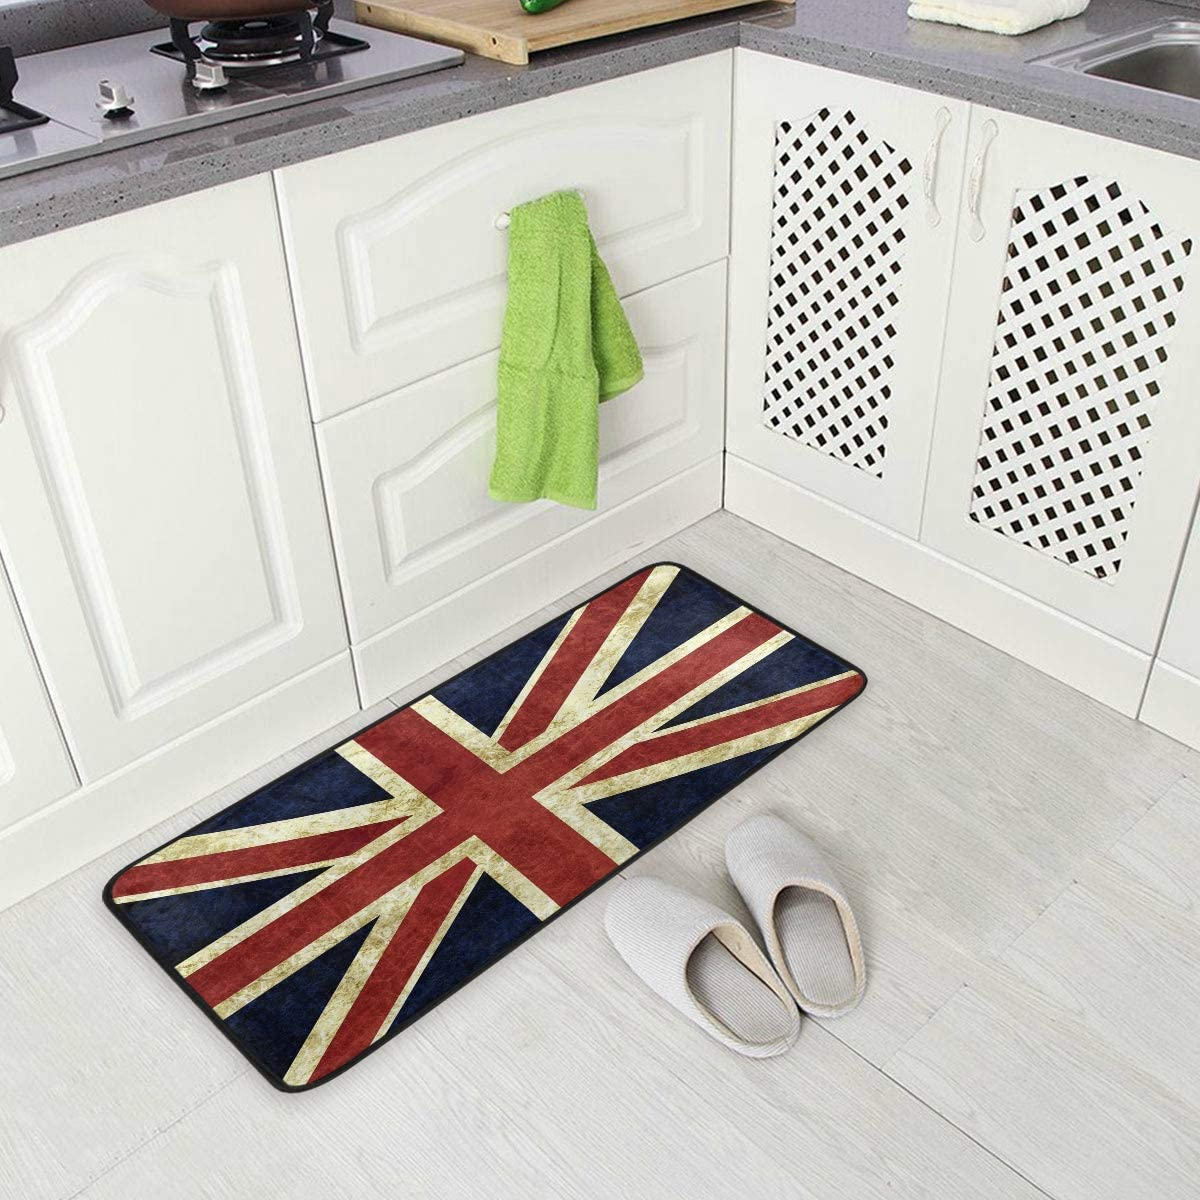 ALAZA Vintage Union Jack British Flag Non Slip Kitchen Floor Mat Kitchen Rug for Entryway Hallway Bathroom Living Room Bedroom 39 x 20 inches 1.7 x 3.3